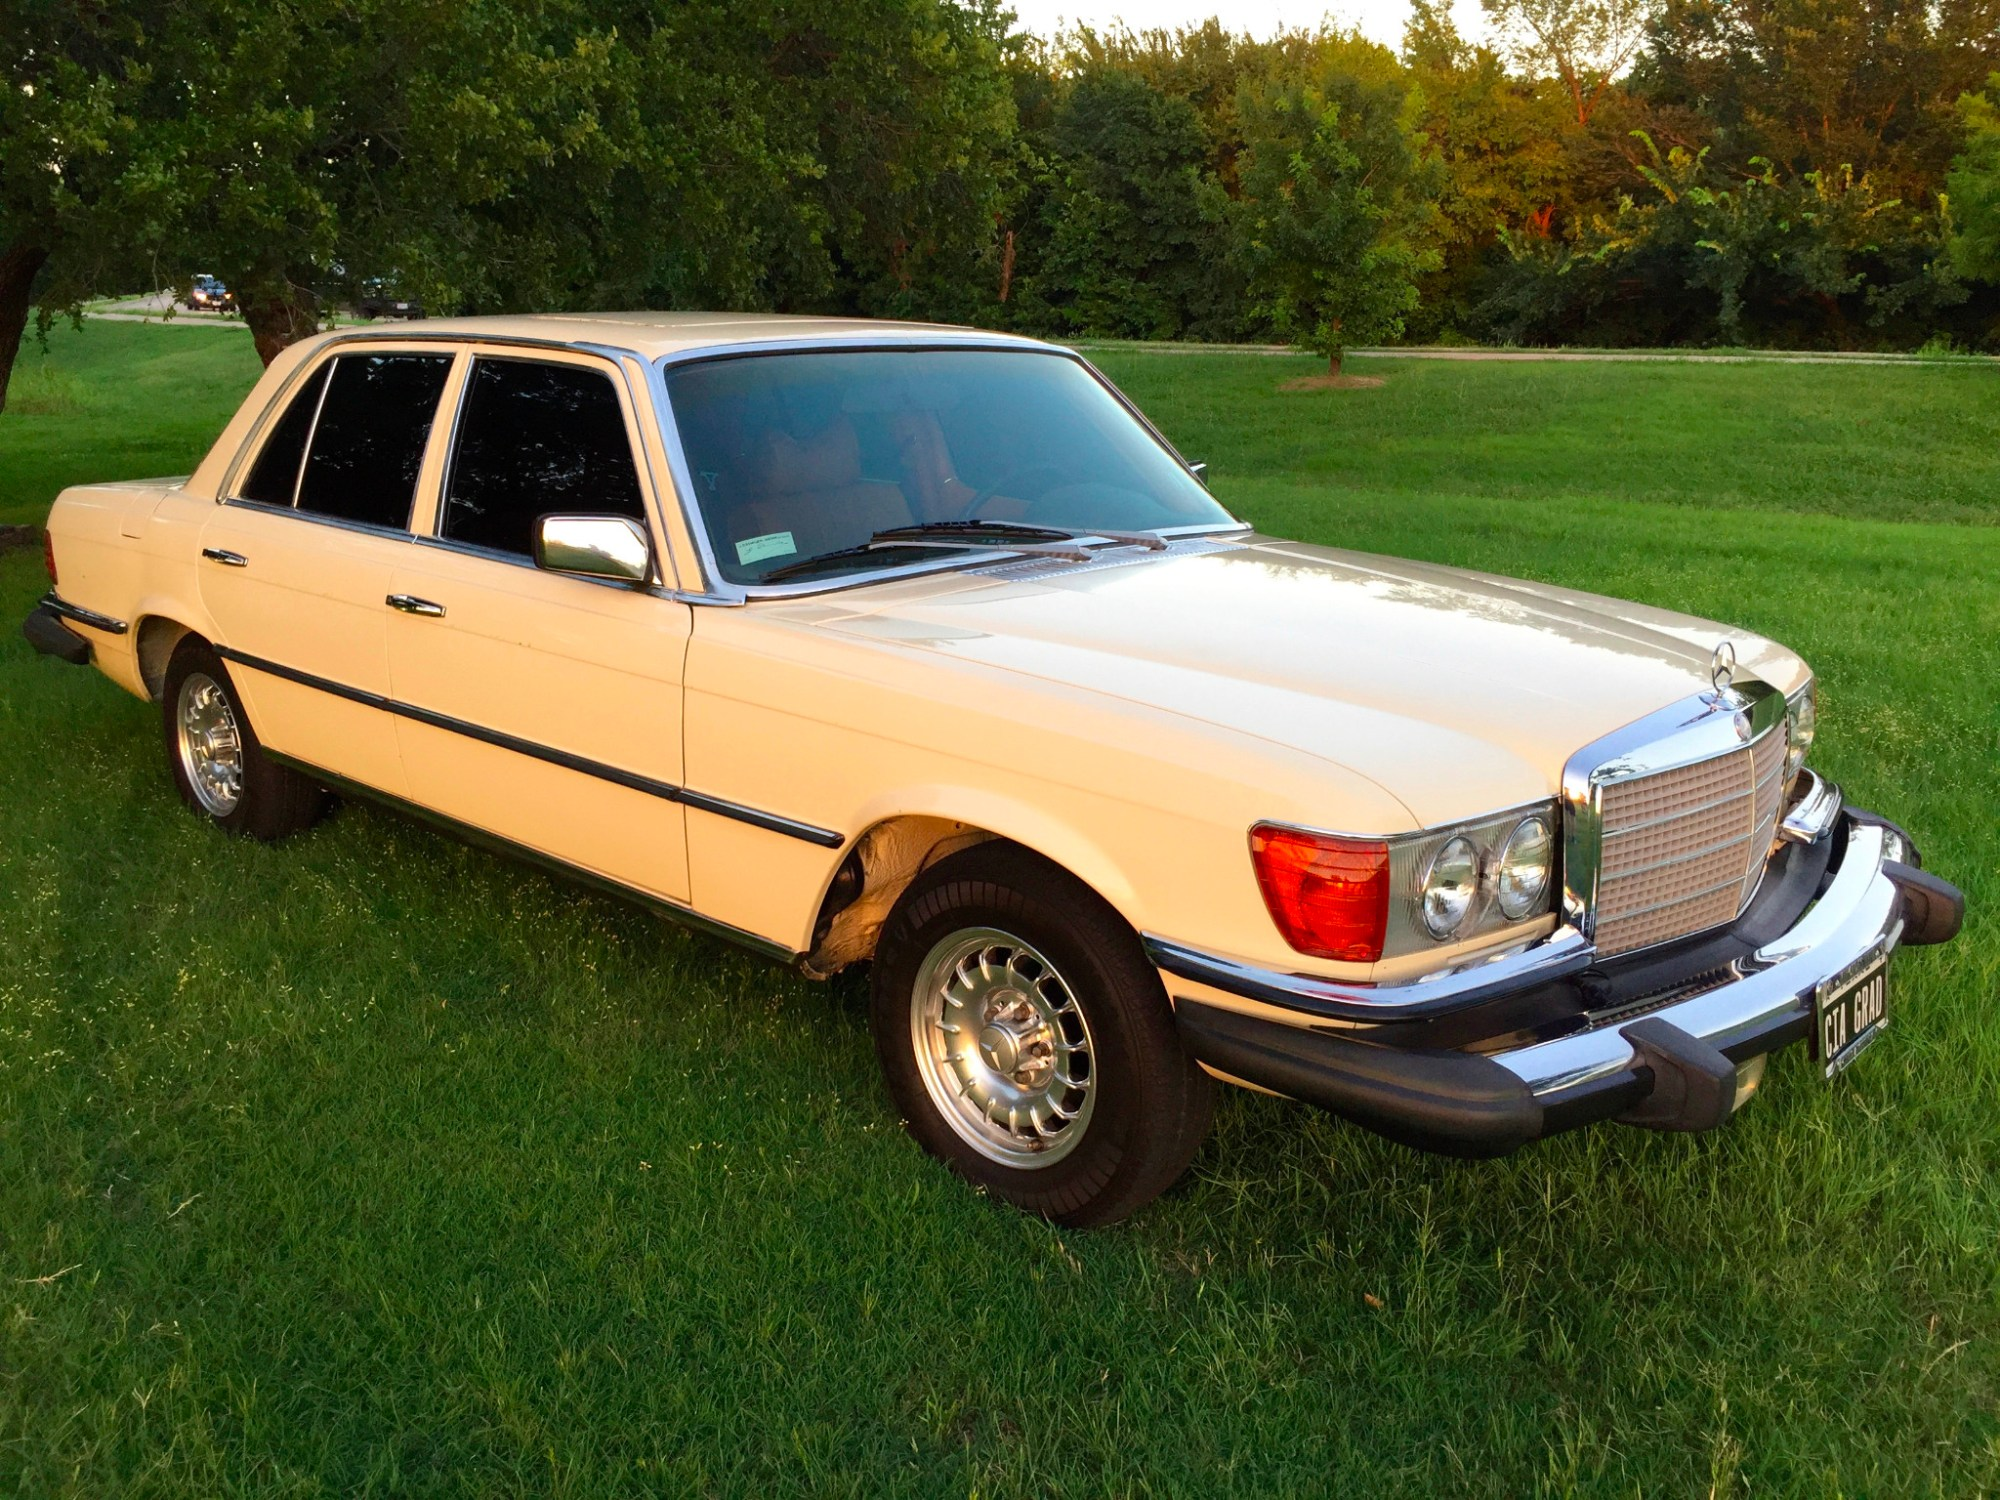 hight resolution of 1979 mercedes benz 300sd for sale on bat auctions sold for 3 850 on october 18 2017 lot 6 410 bring a trailer